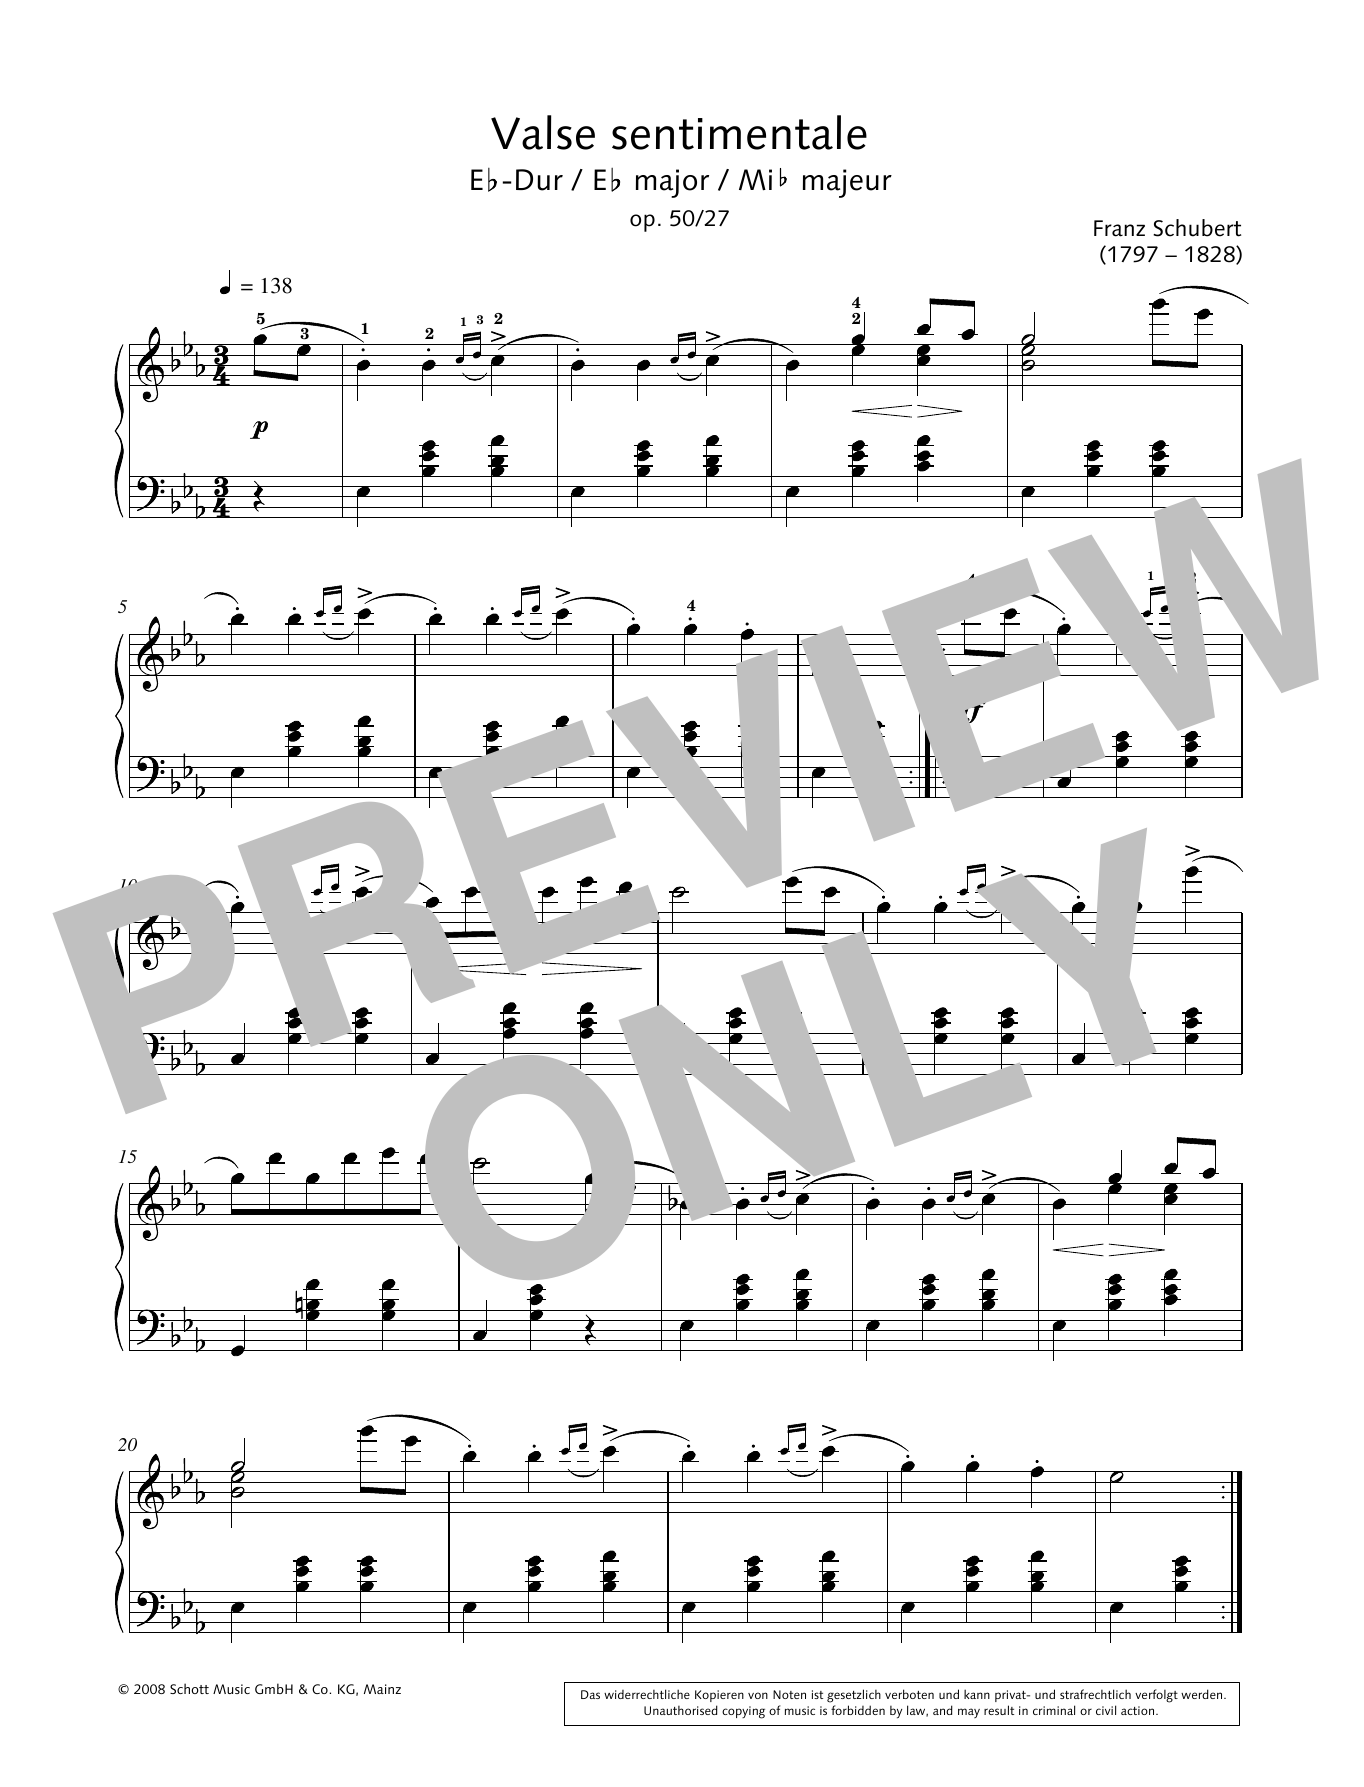 Valse sentimentale in E-flat major Sheet Music